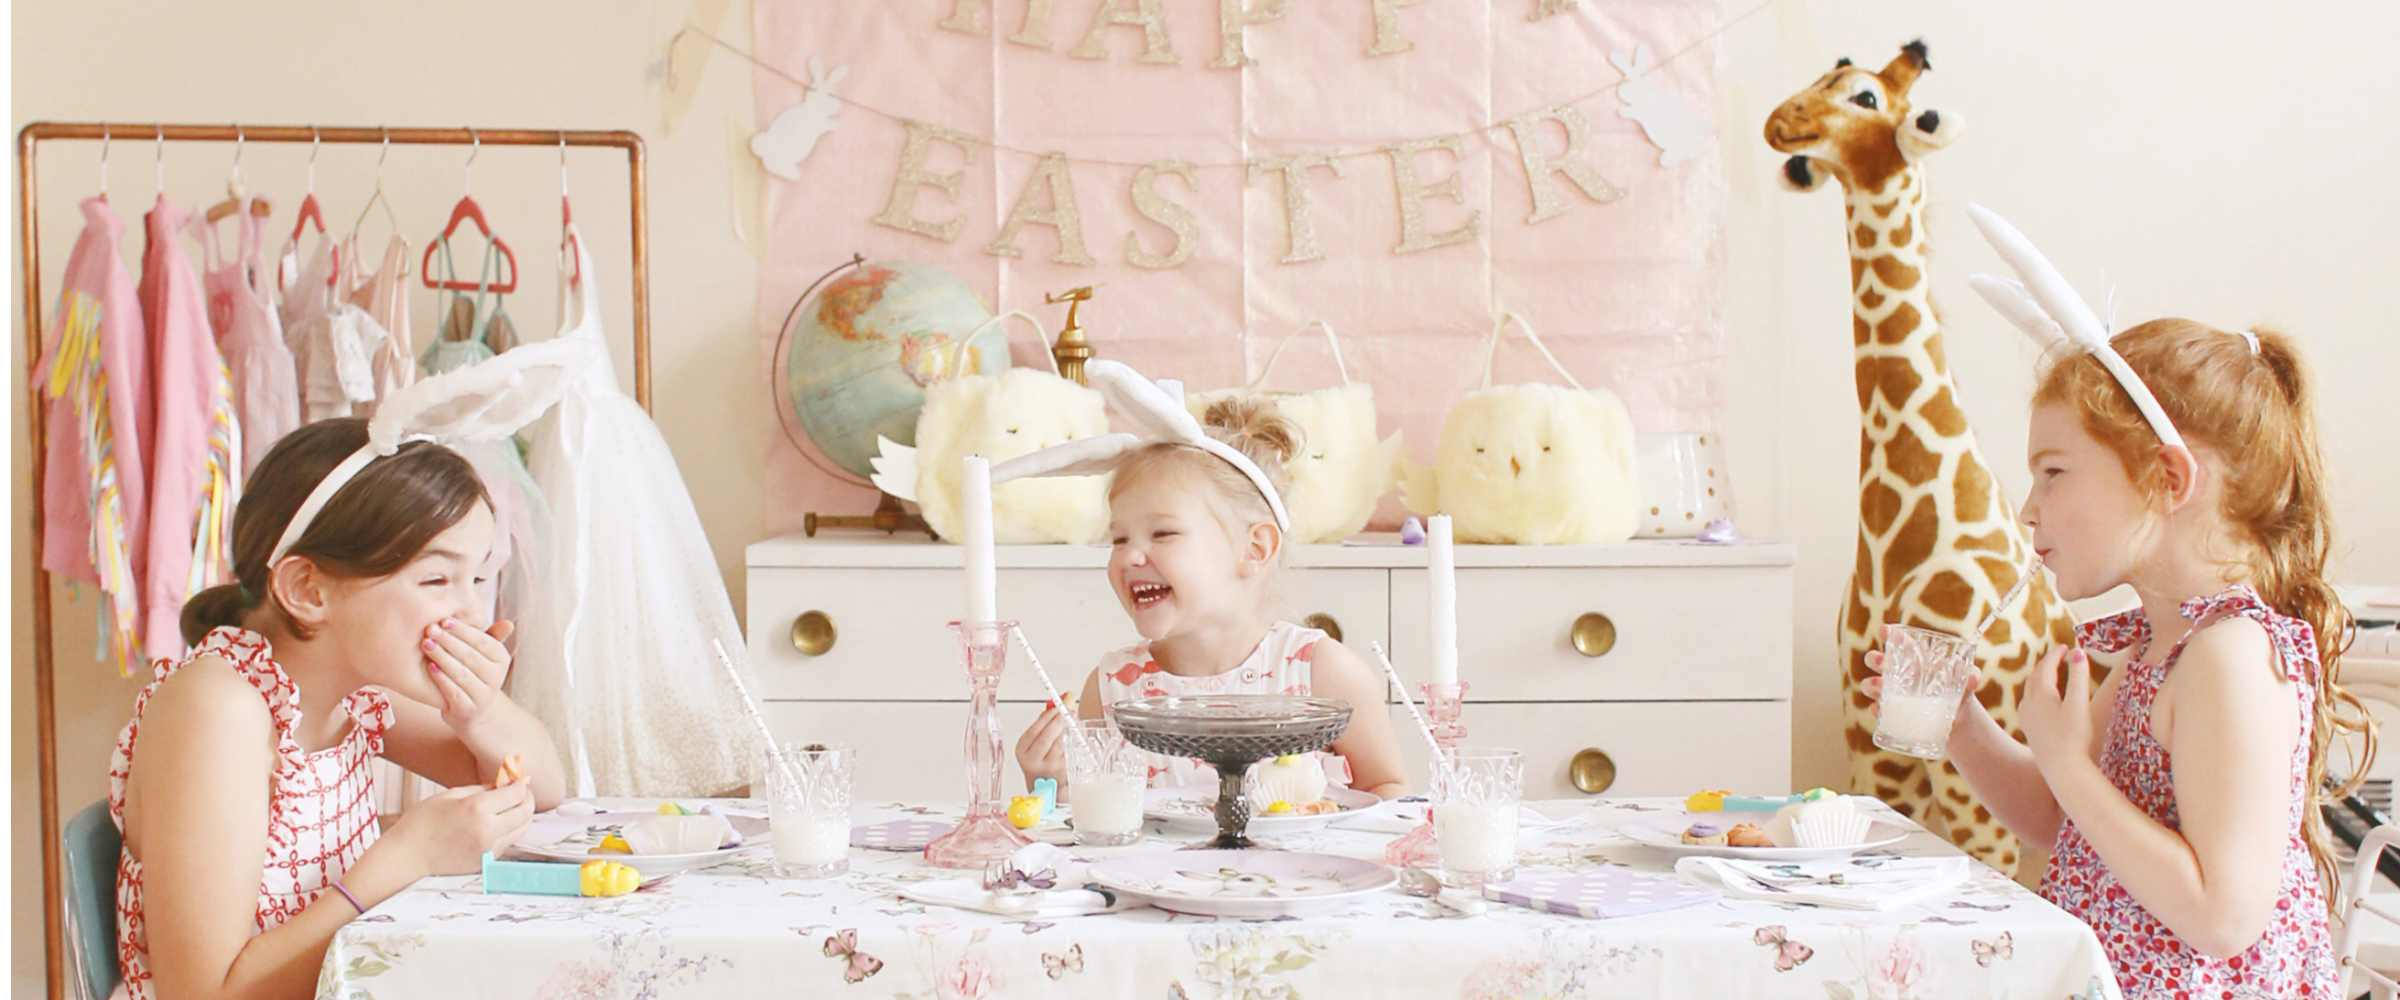 Easter Party Inspiration with Pottery Barn Kids